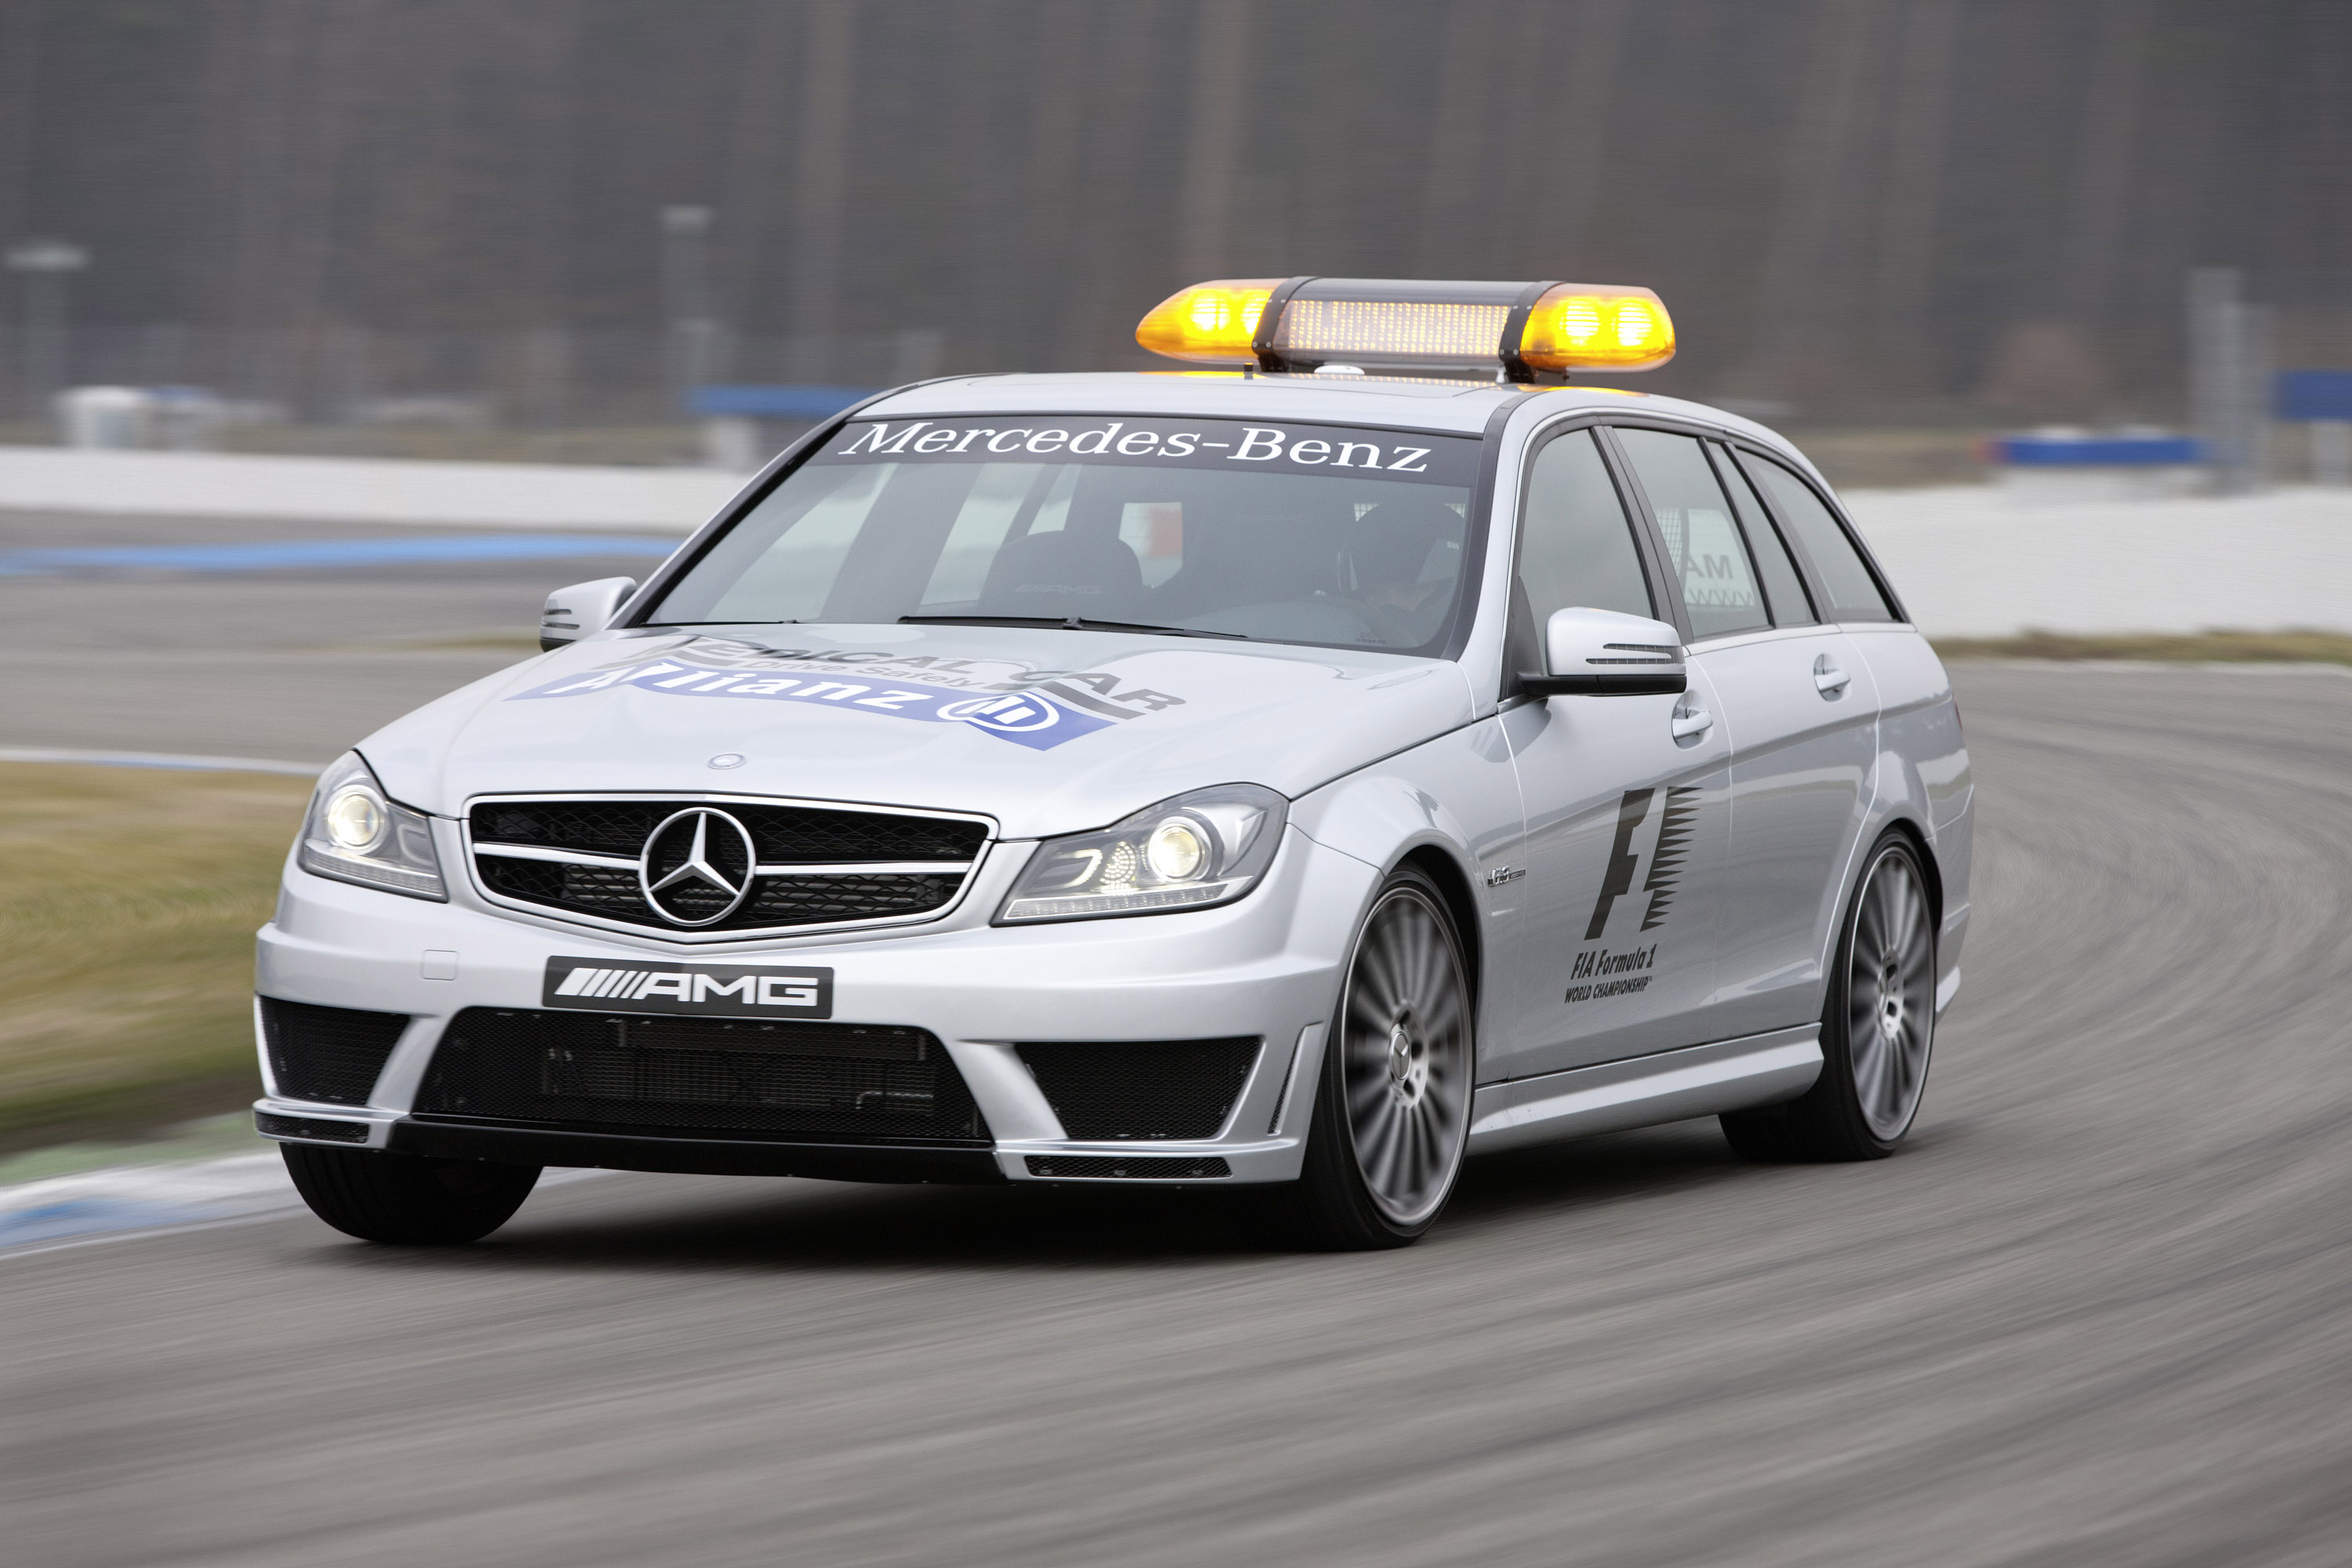 2012 mercedes benz c 63 amg and sls amg safety cars for Mercedes benz safety